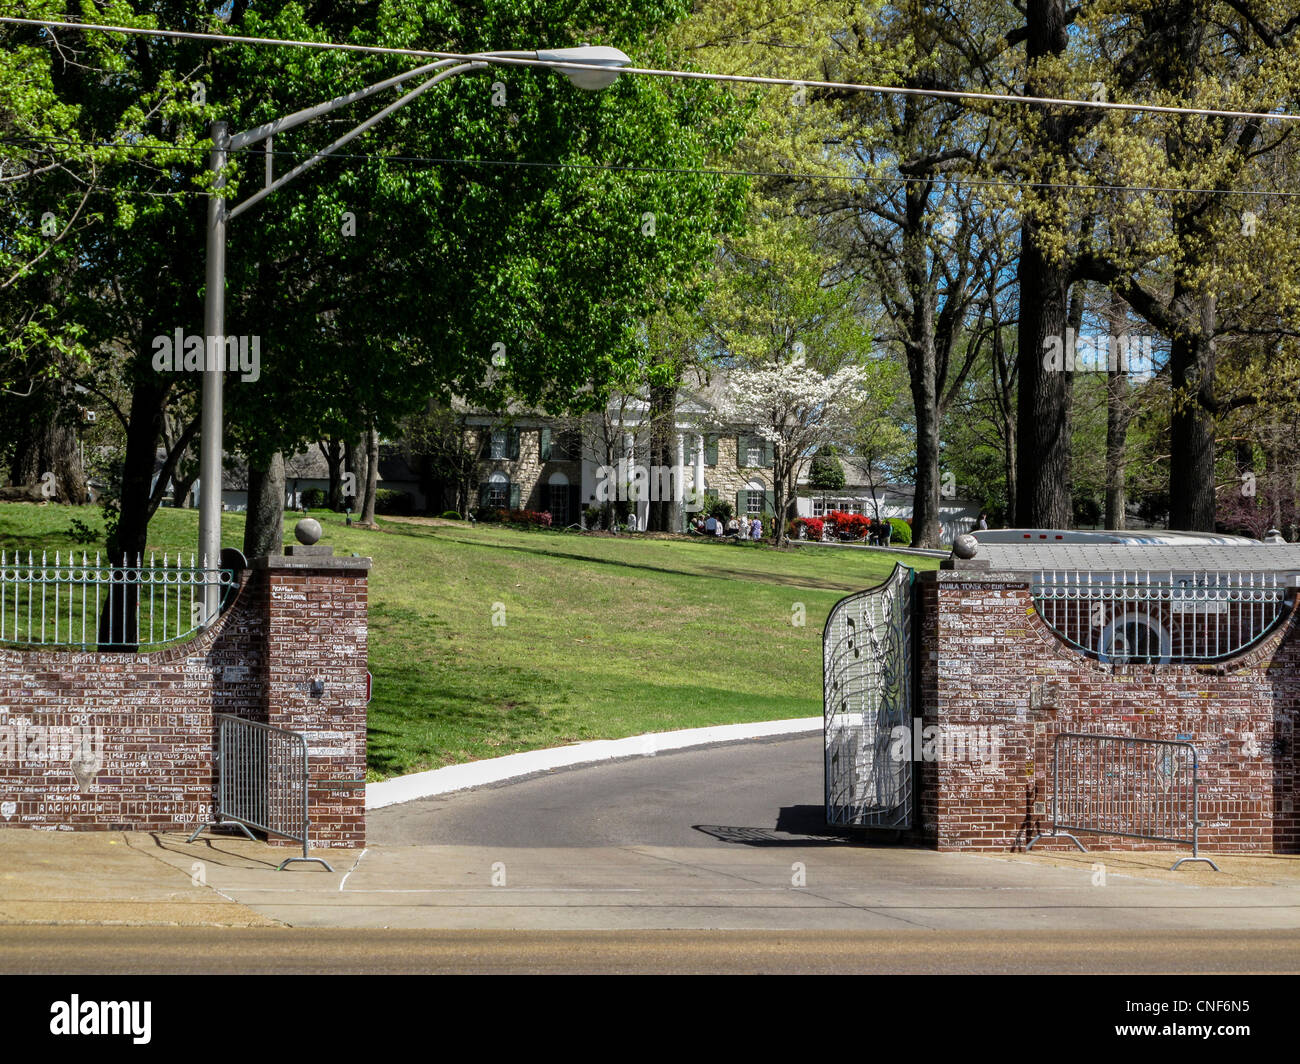 Elvis Presley's home and museum Graceland, entrance to the